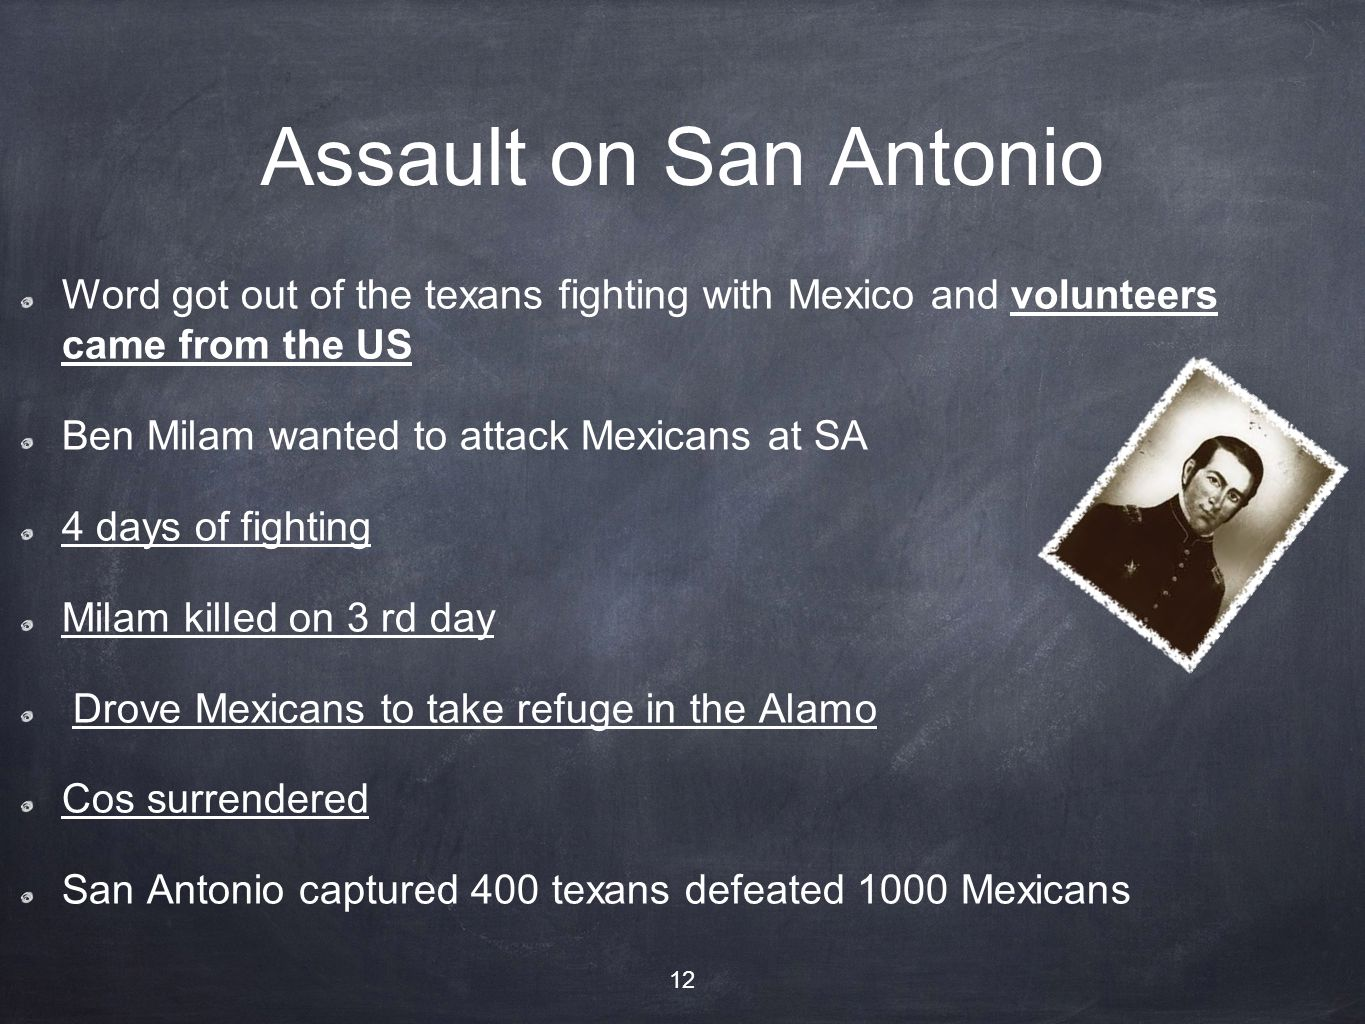 Assault on San Antonio Word got out of the texans fighting with Mexico and volunteers came from the US.